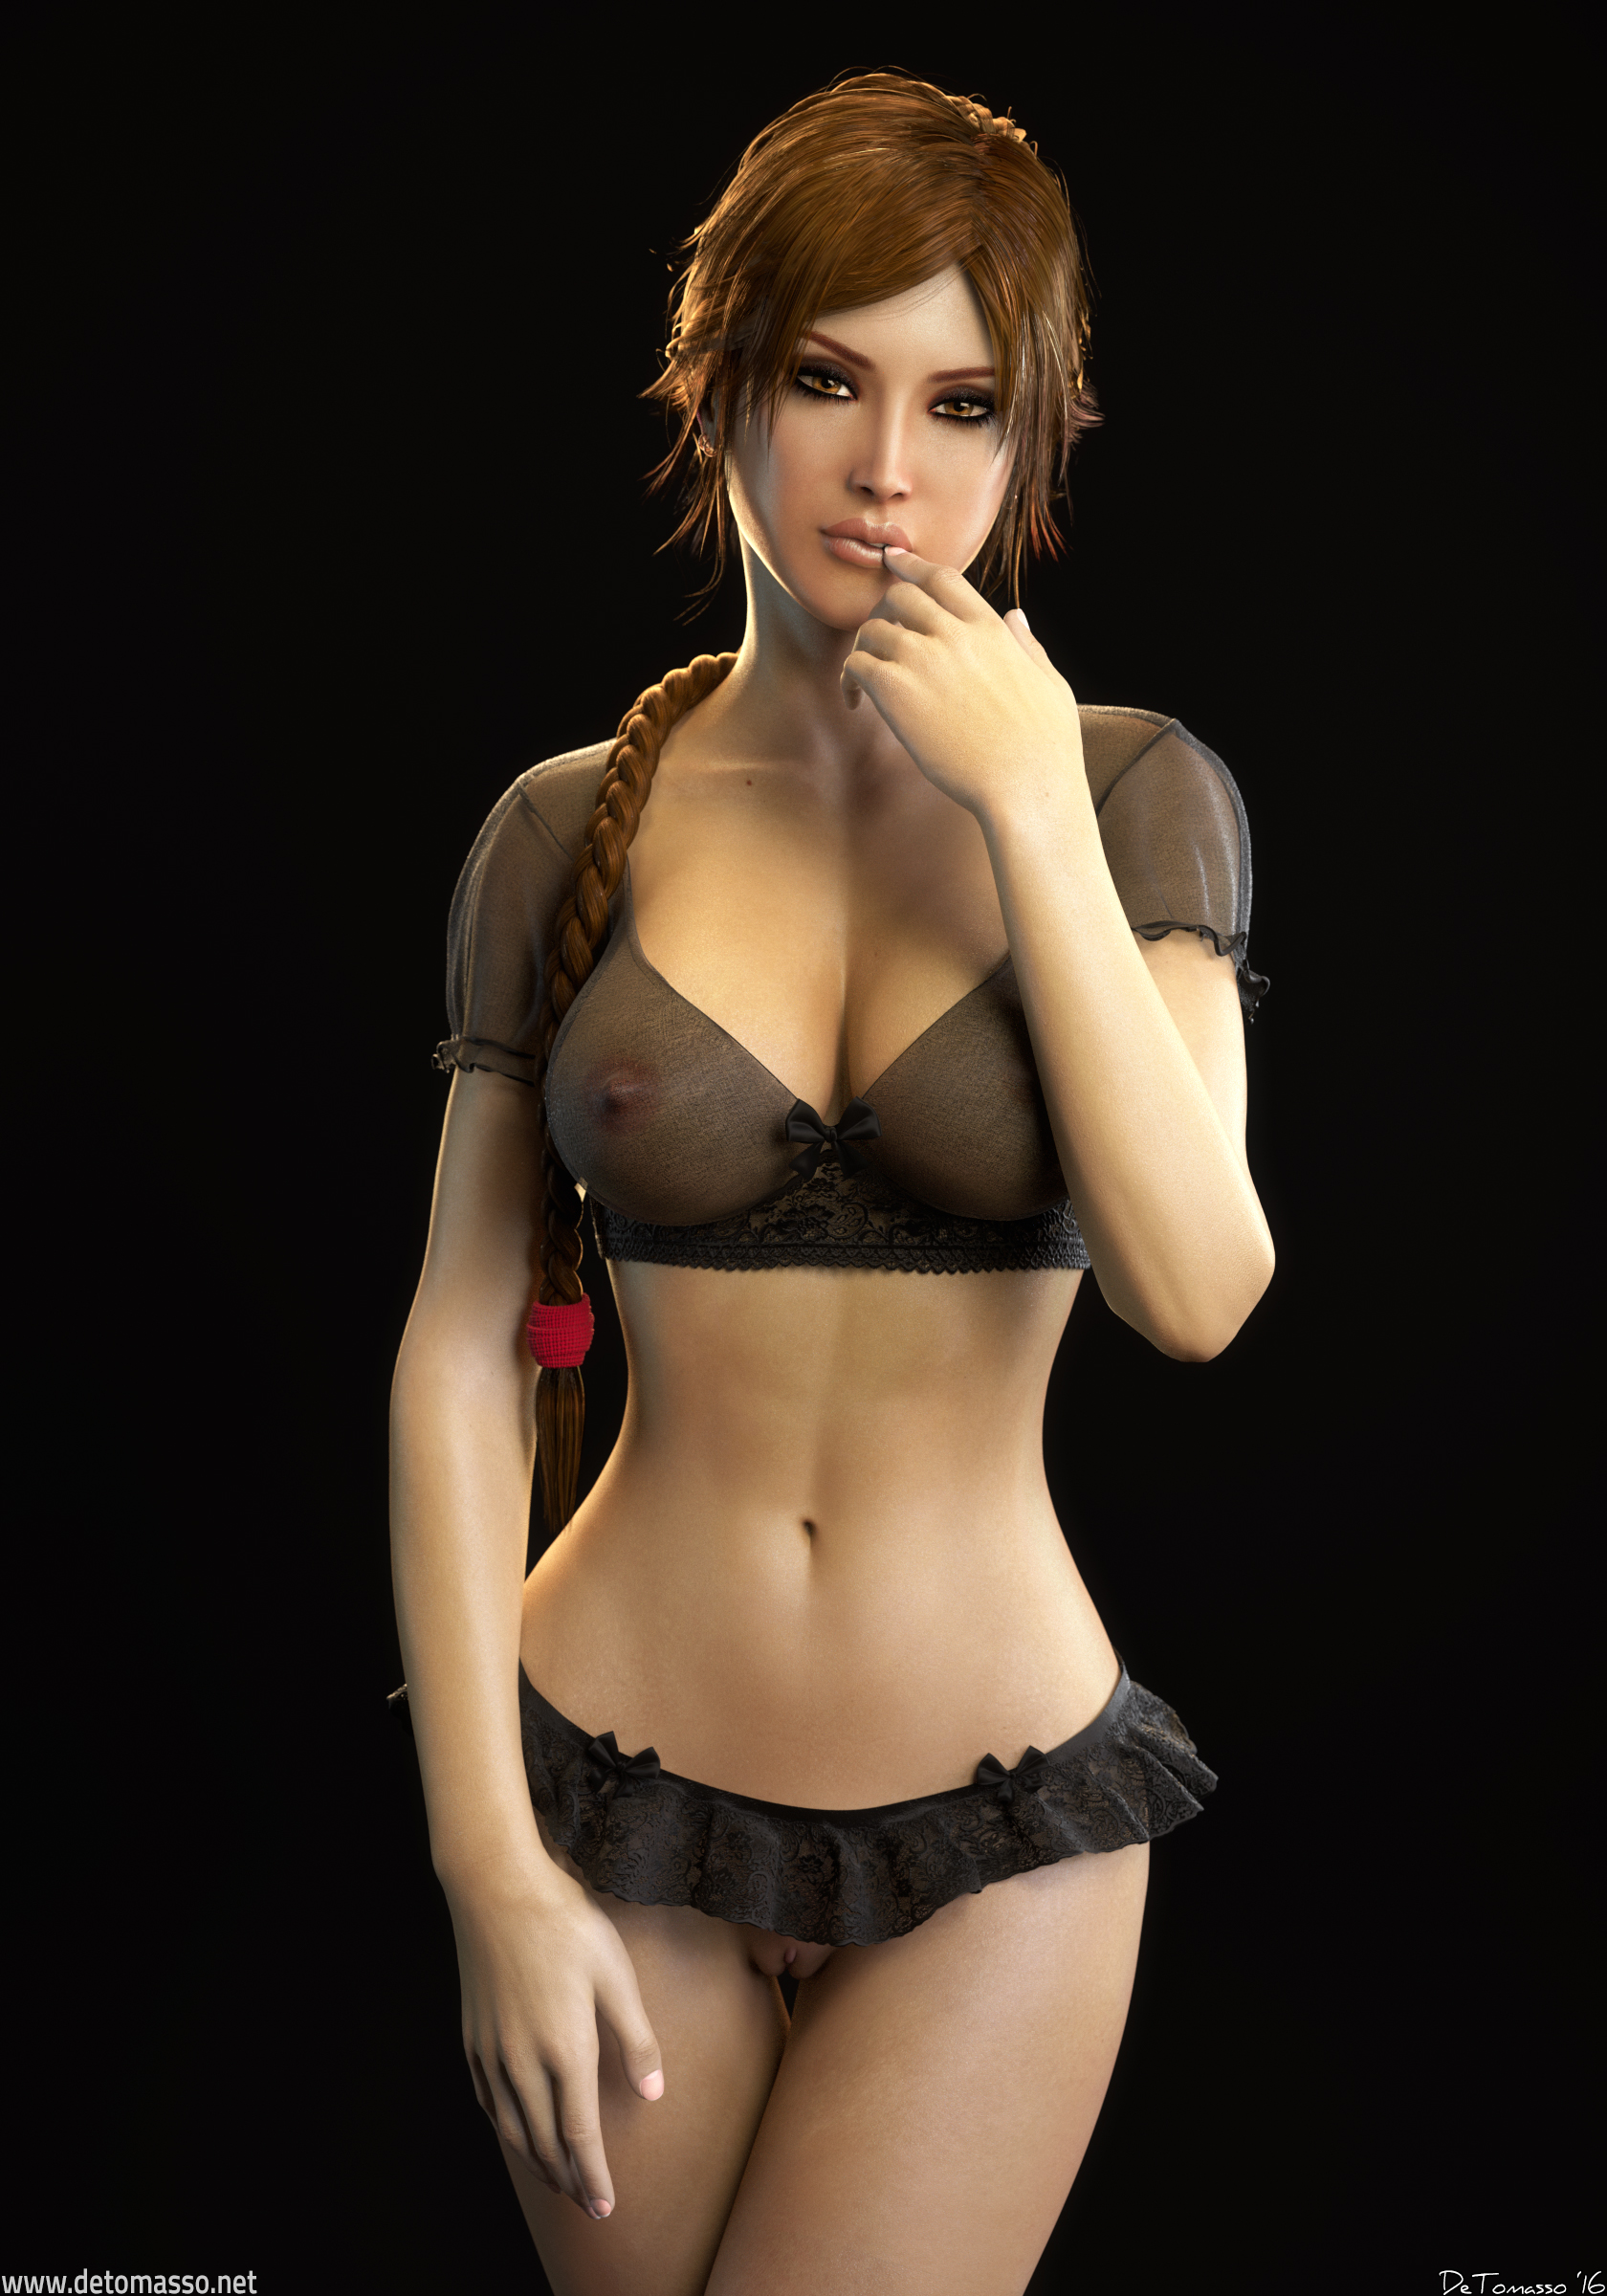 Cute Face Girl Wallpaper Mix 61 Lara Croft By Detomasso